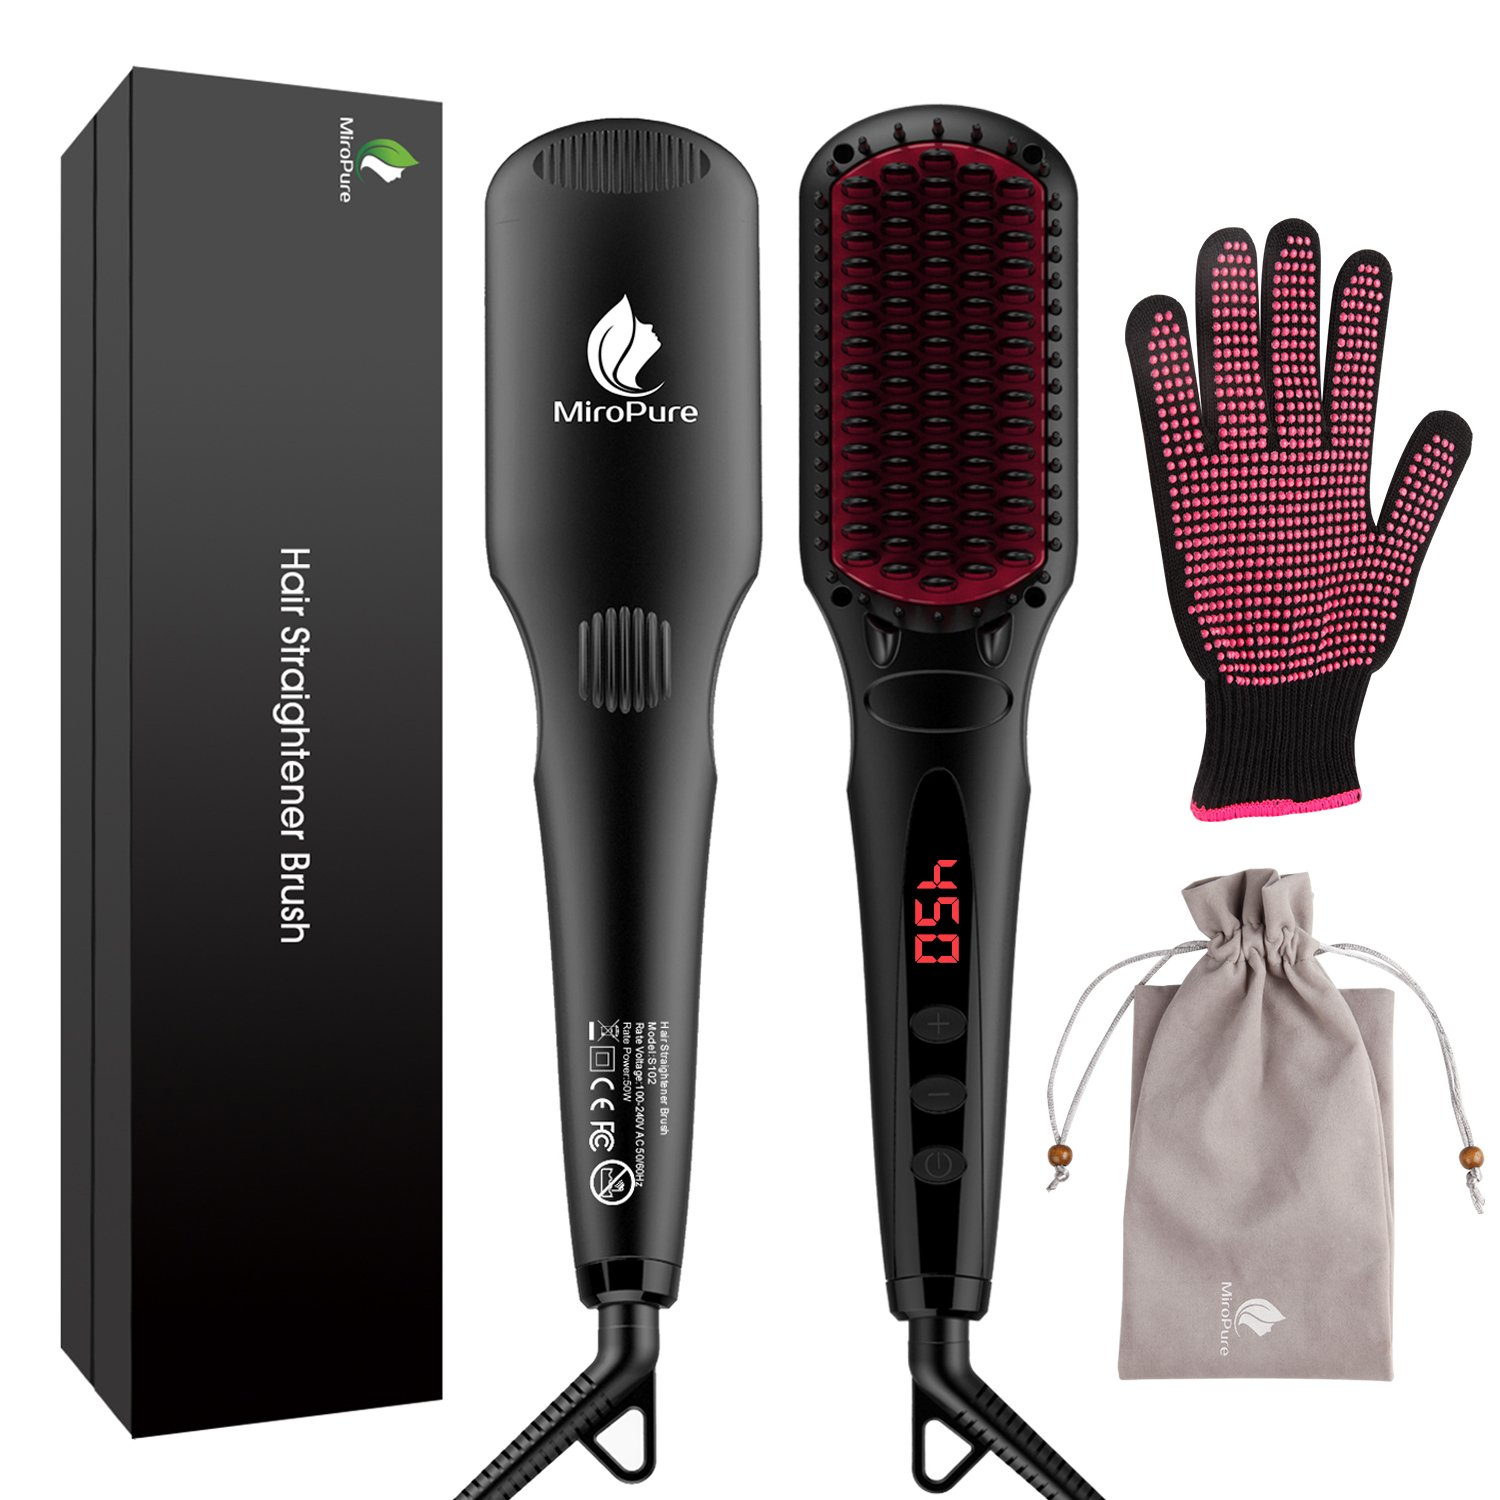 MiroPure Hair Straightening Brush Review